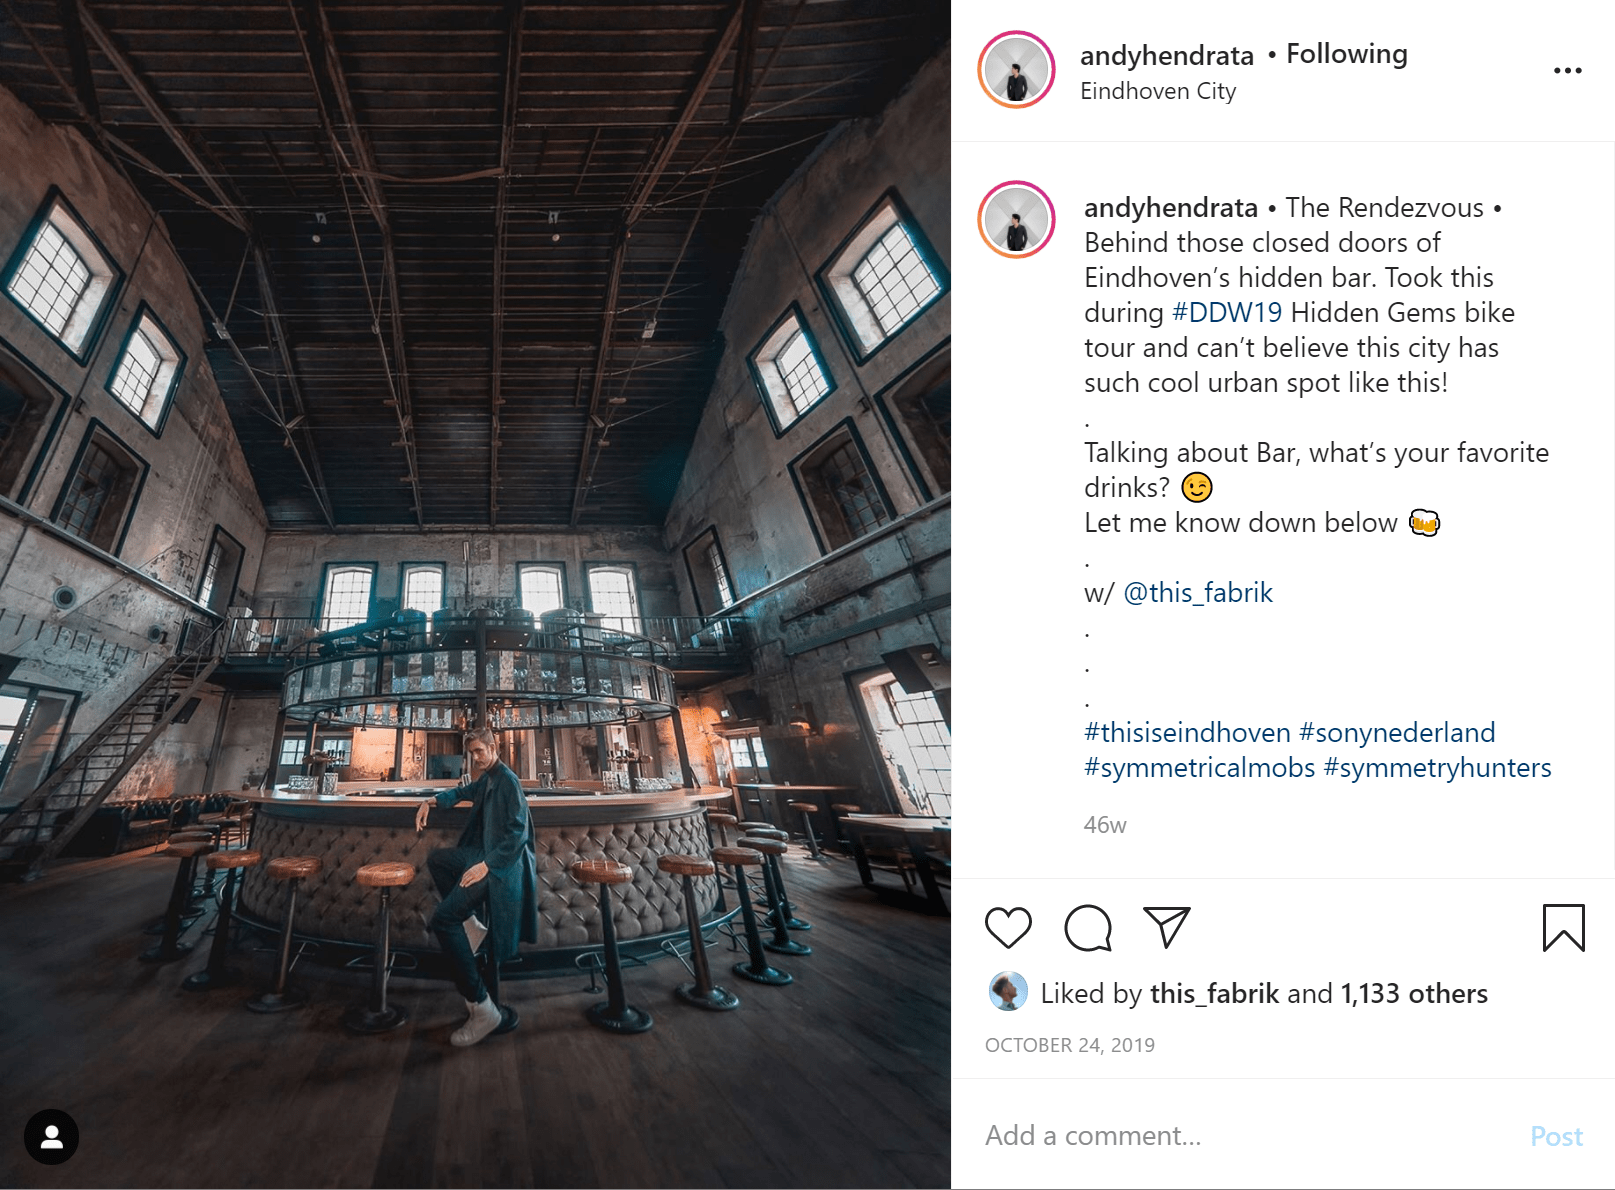 Man wearing a long black coat sits on a stool at a bar in a big industrial warehouse